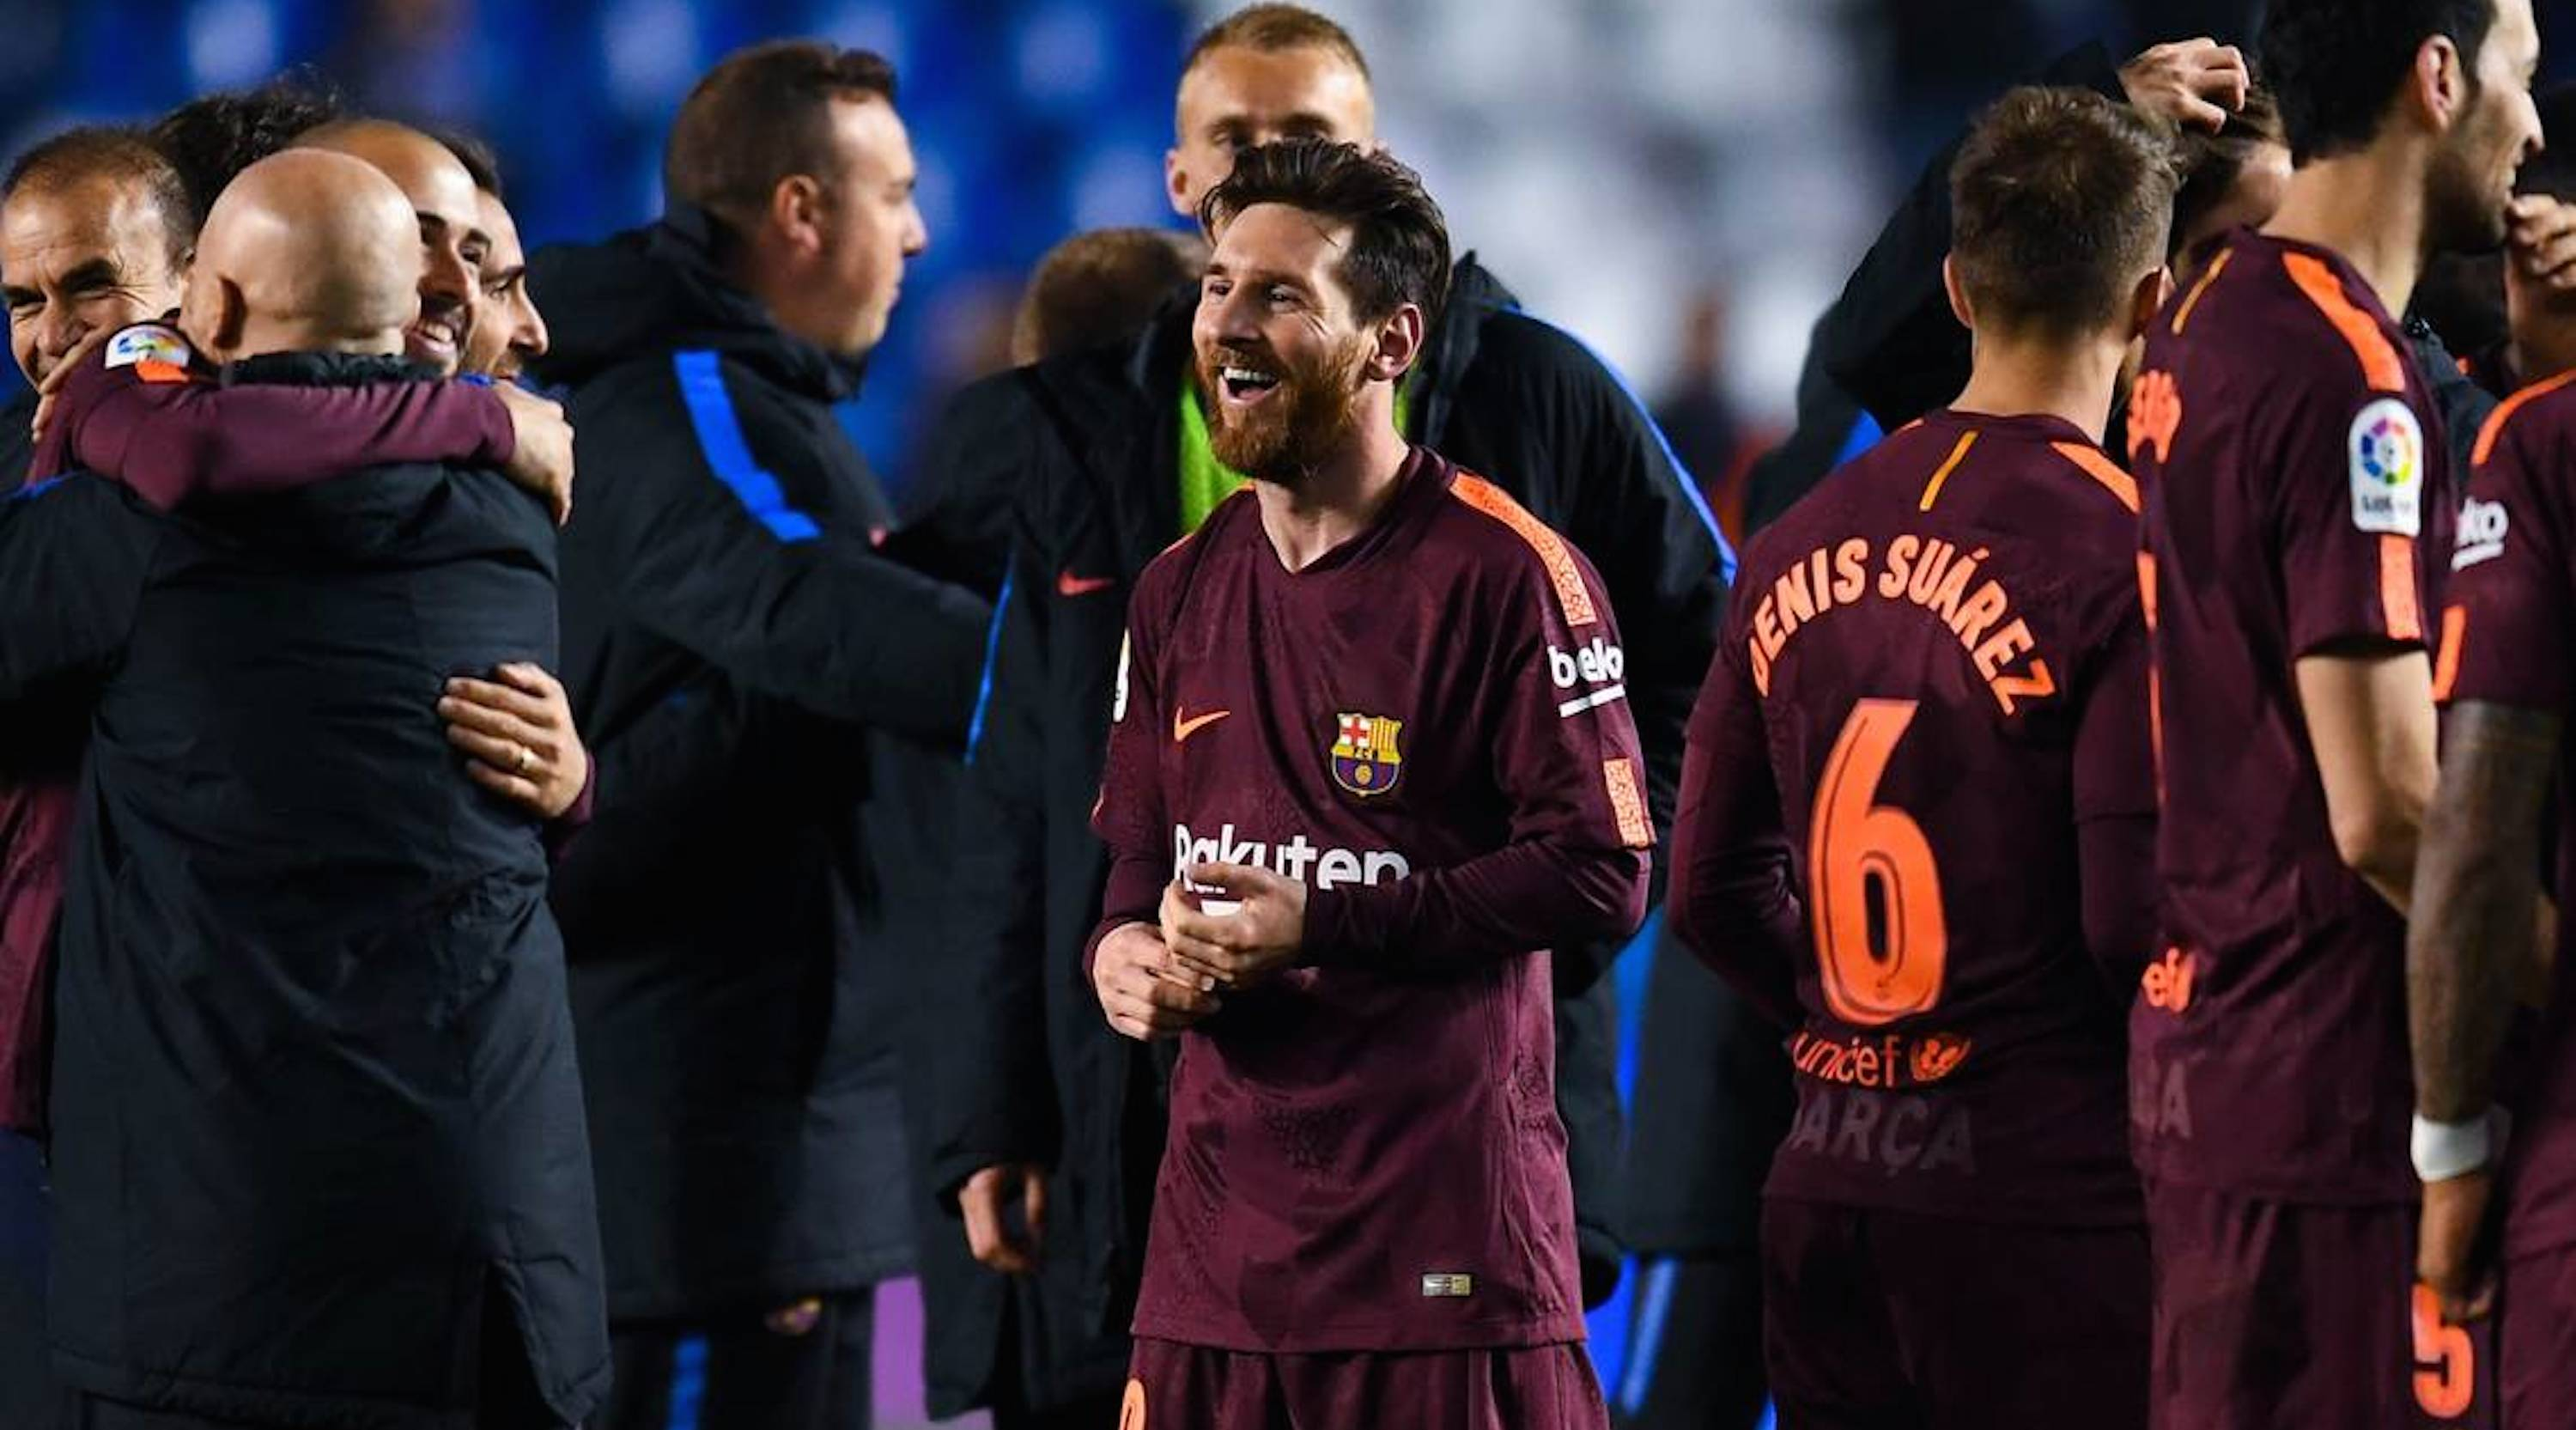 LA CORUNA, SPAIN - APRIL 29: Lionel Messi of FC Barcelona celebrates with his team mates winning La Liga title after the La Liga match between Deportivo La Coruna and Barcelona at Estadio Riazor on April 29, 2018 in La Coruna, Spain . (Photo by David Ramos/Getty Images)